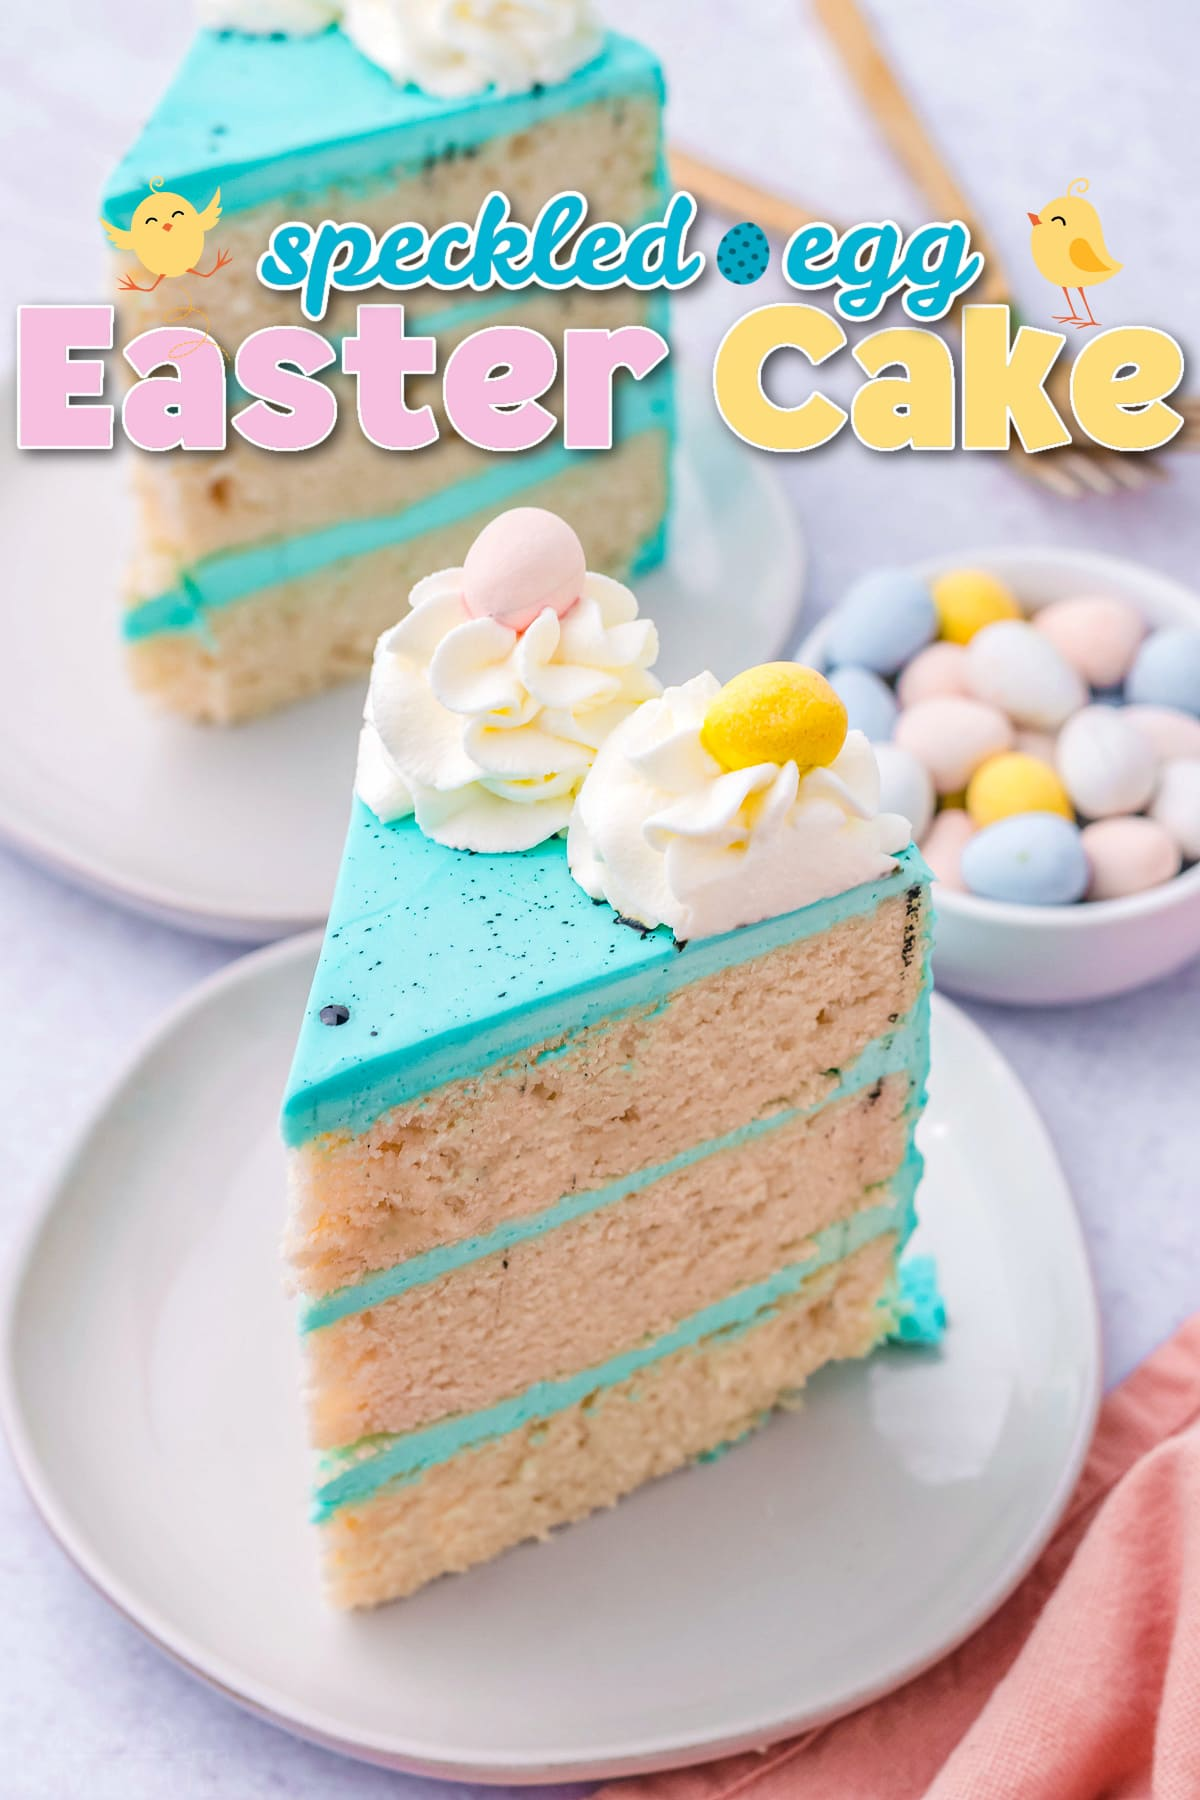 two slices of easter cake with bright blue frosting decorated with cadbury eggs. title overlay at top of image.